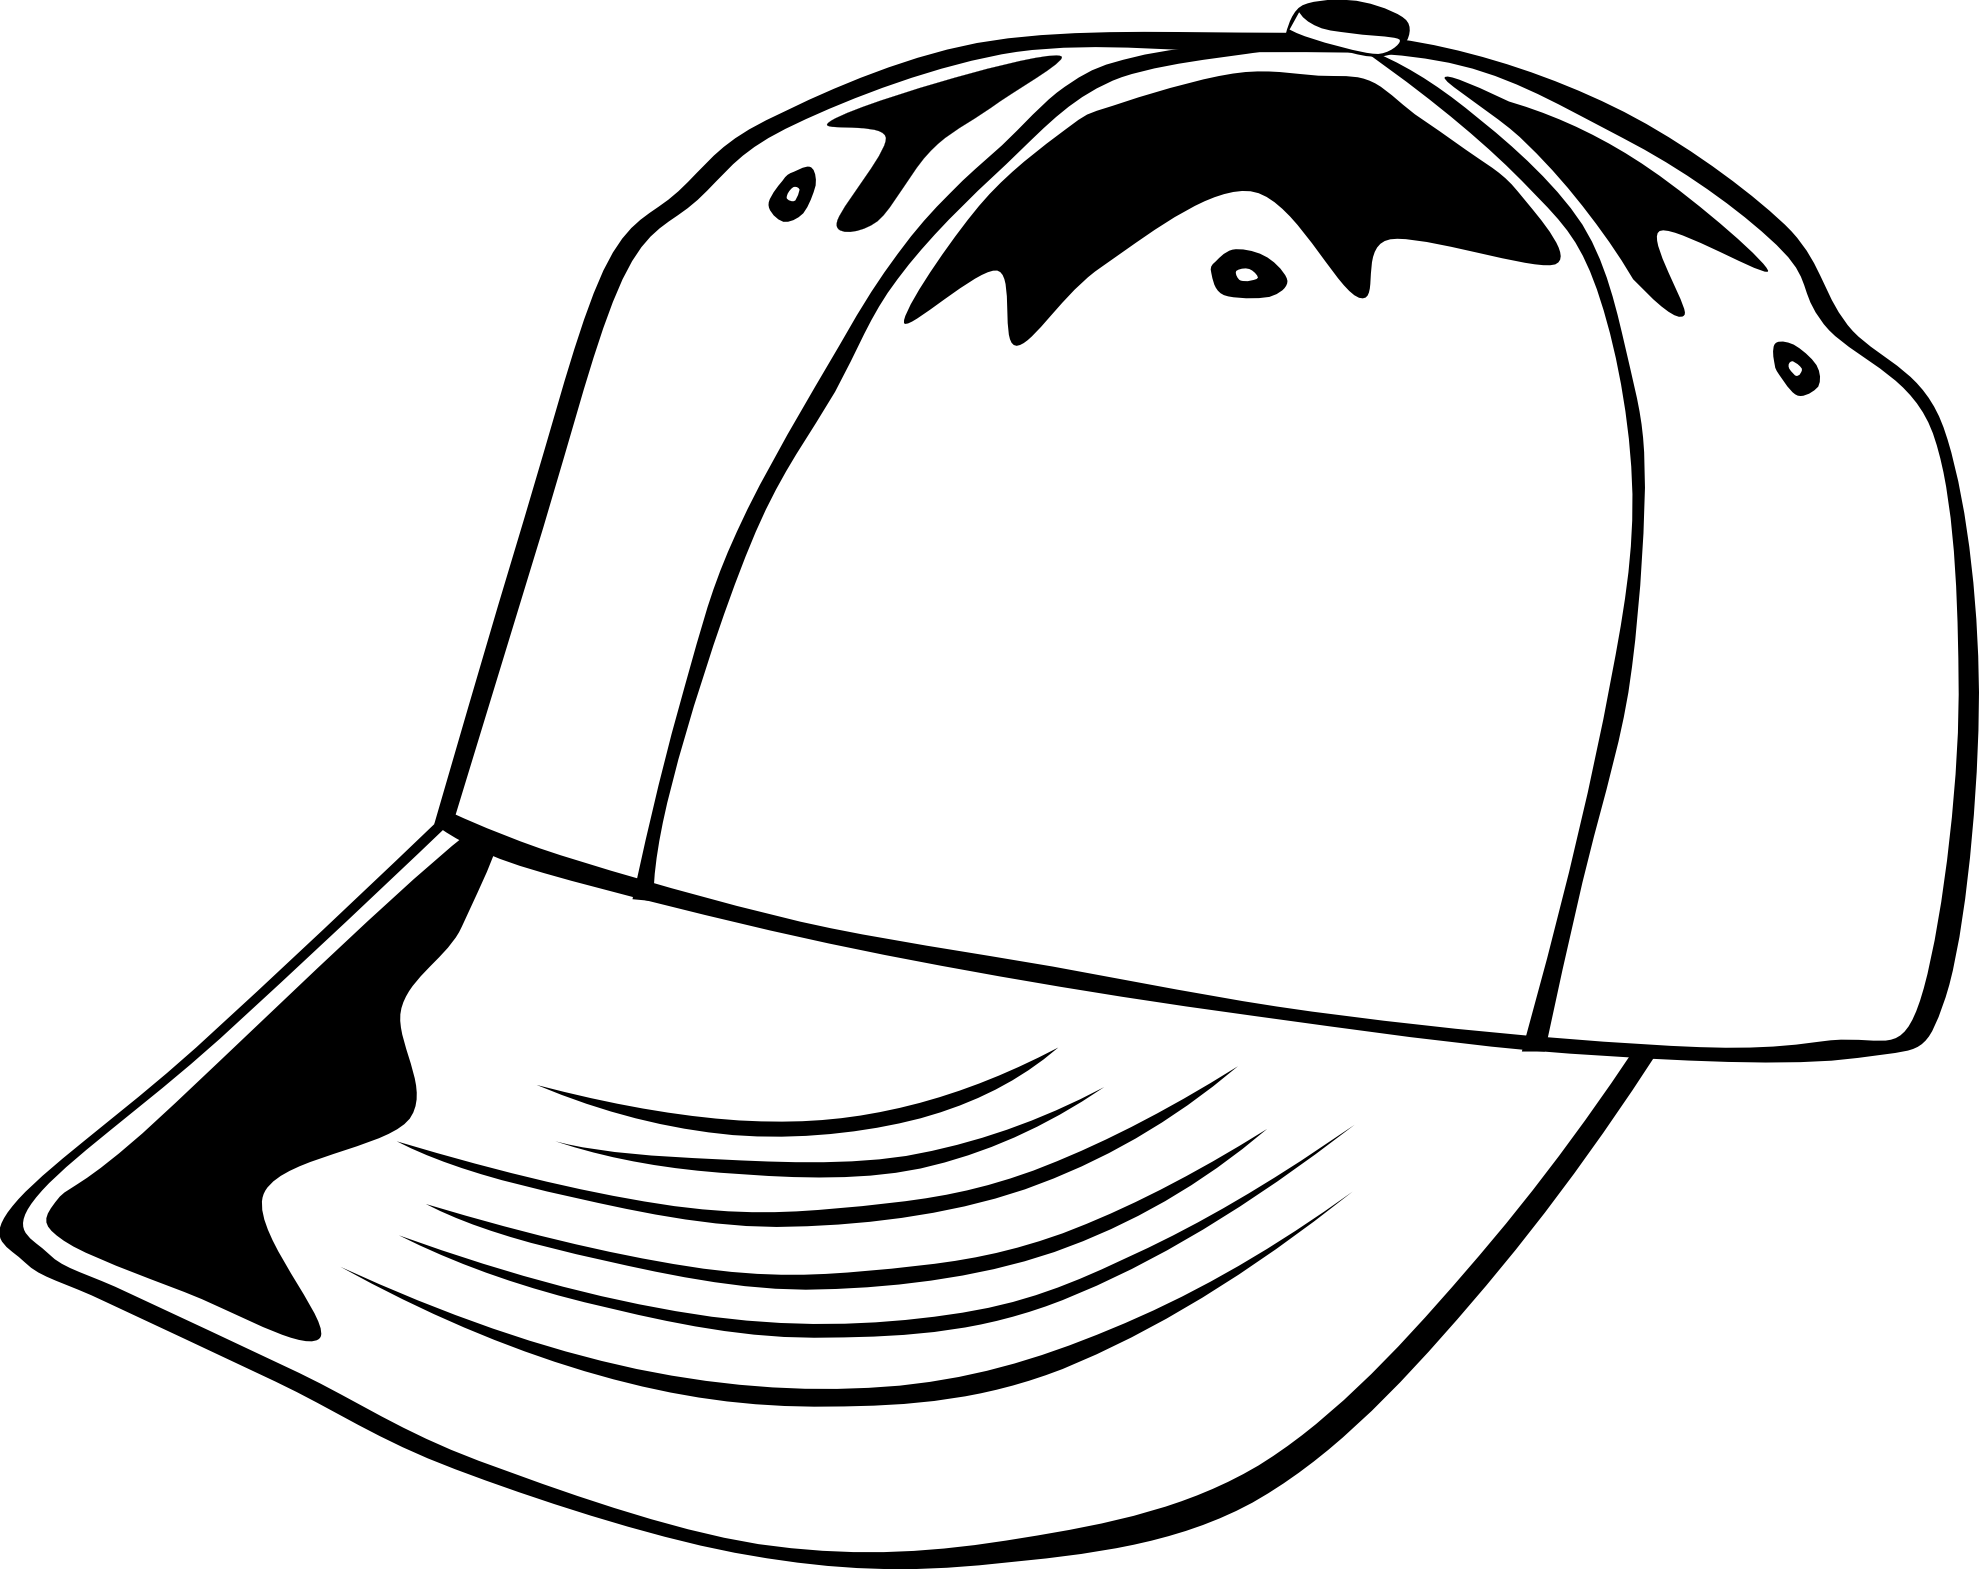 Pirate hat clipart black and white clipart panda free for Pirate hat coloring page